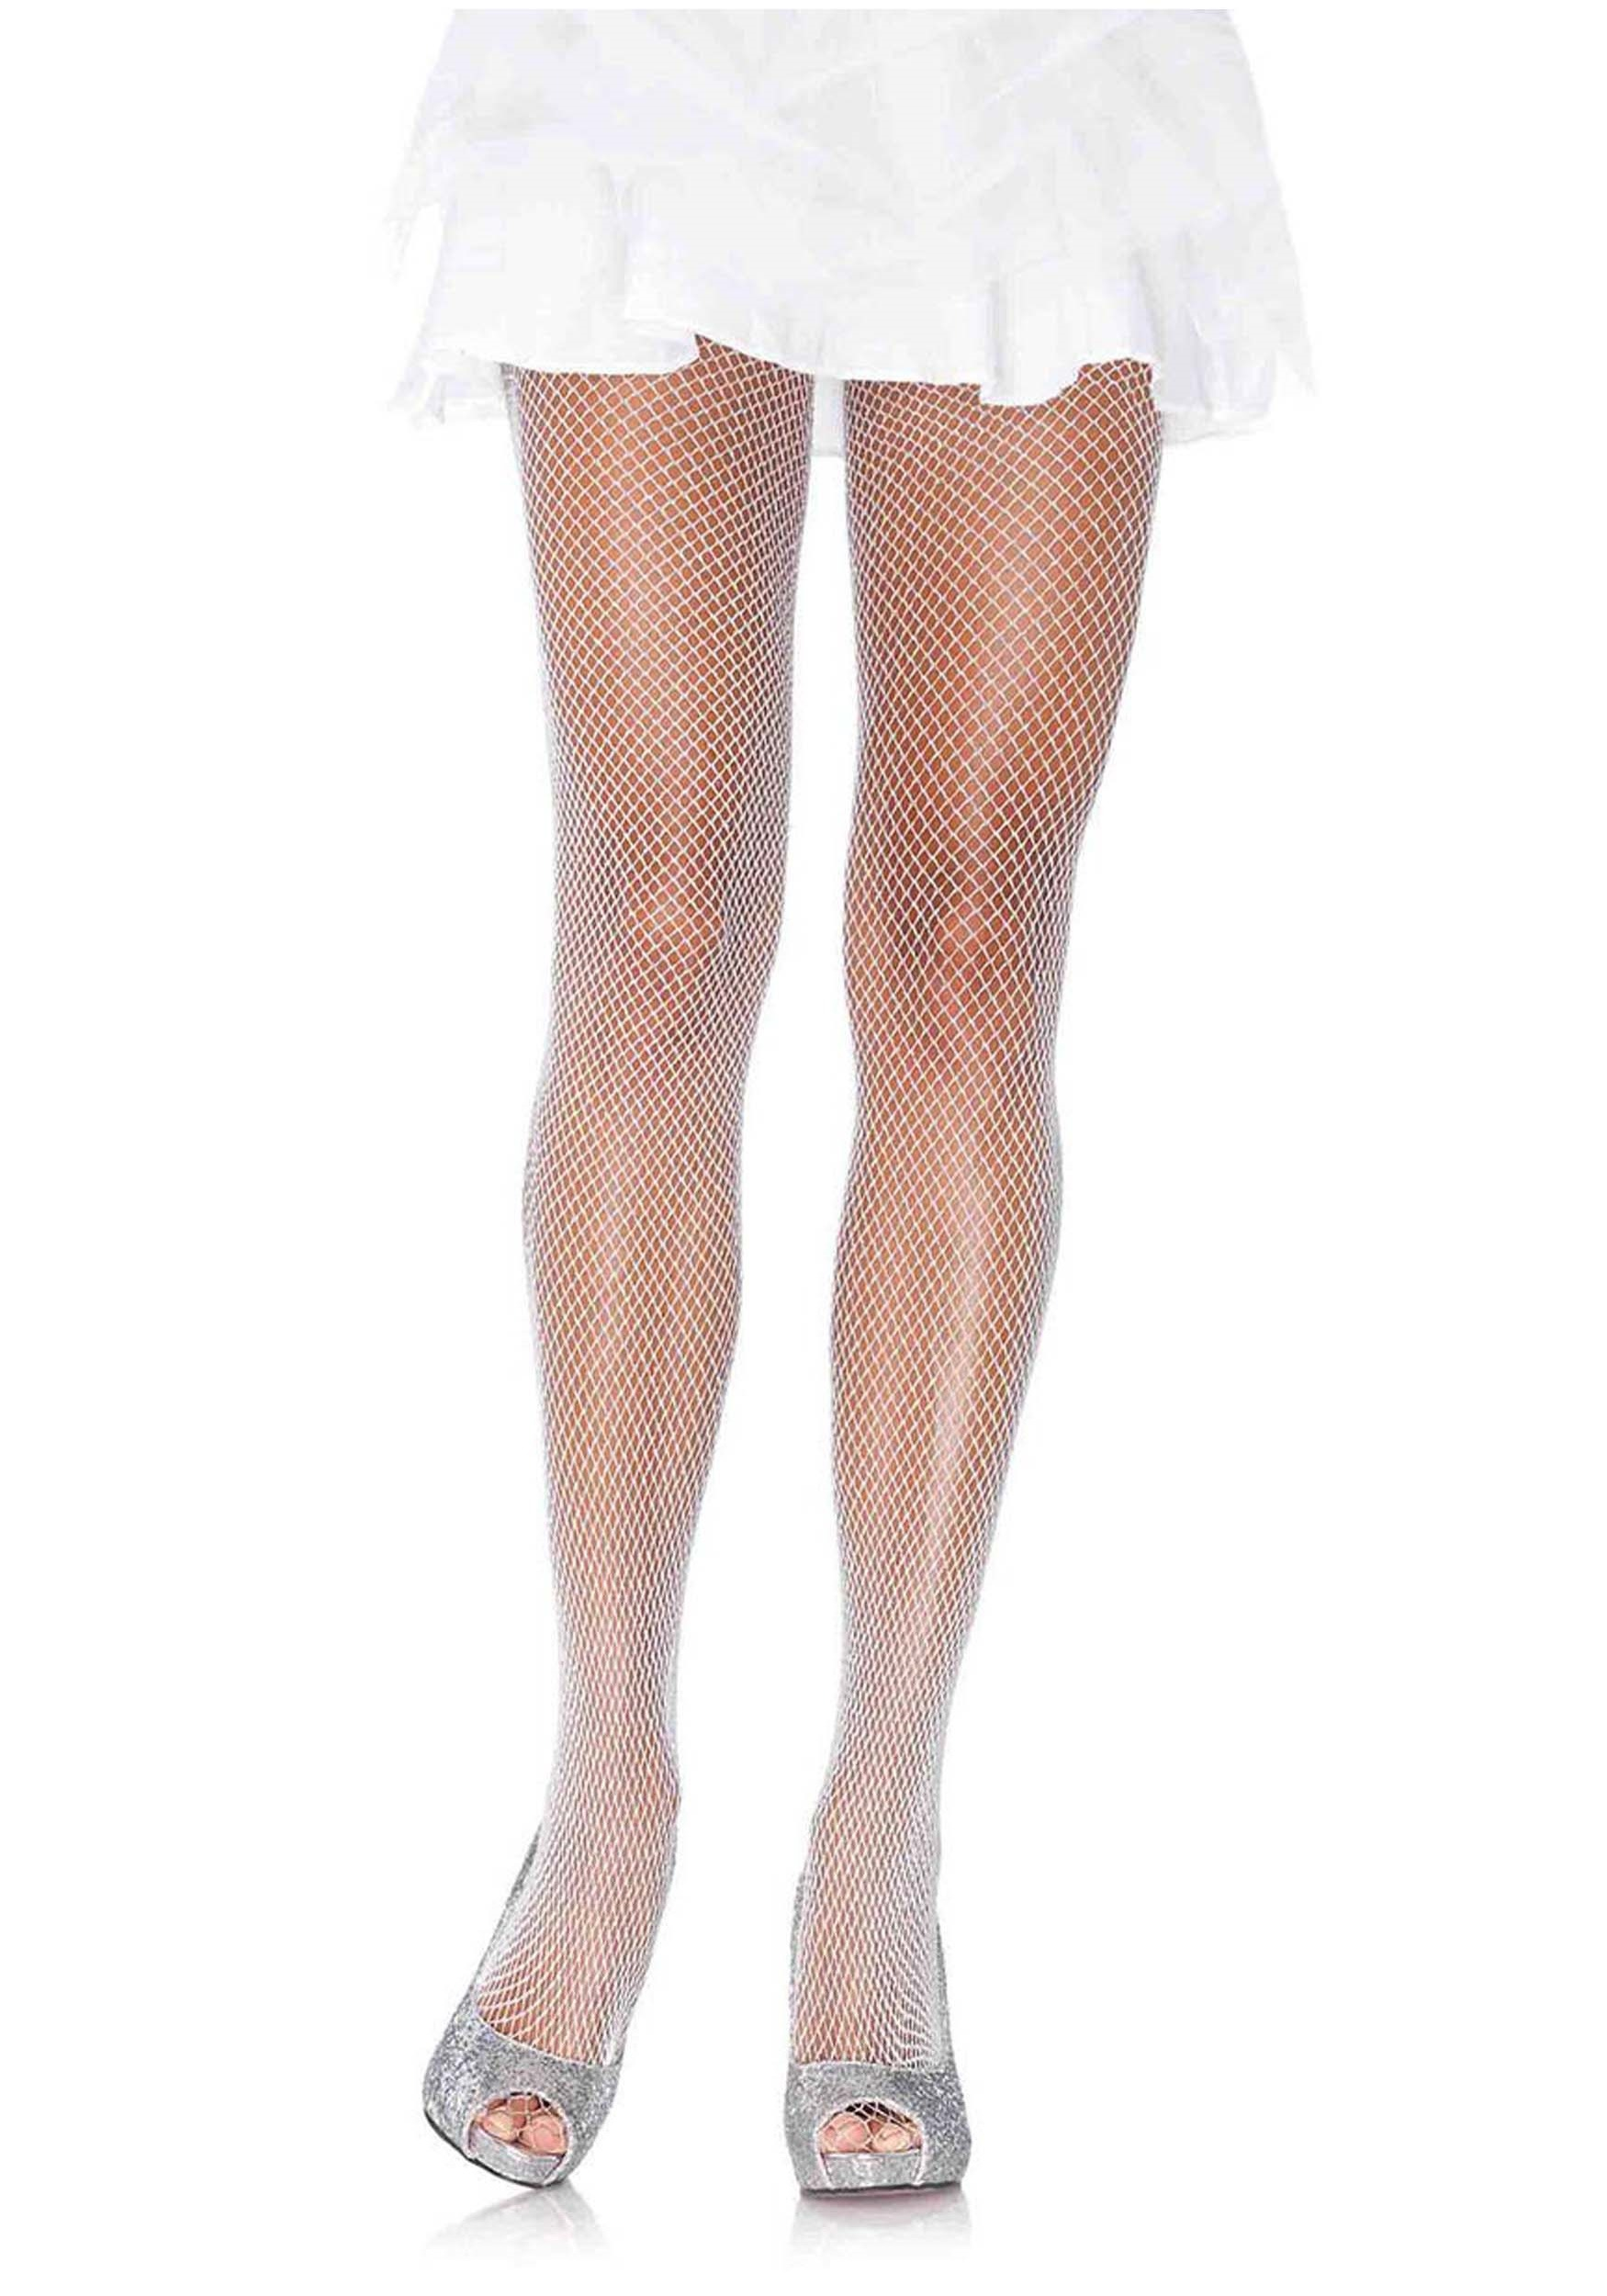 19aef612d7d5d womens-white-shimmer-fishnet-tights.jpg